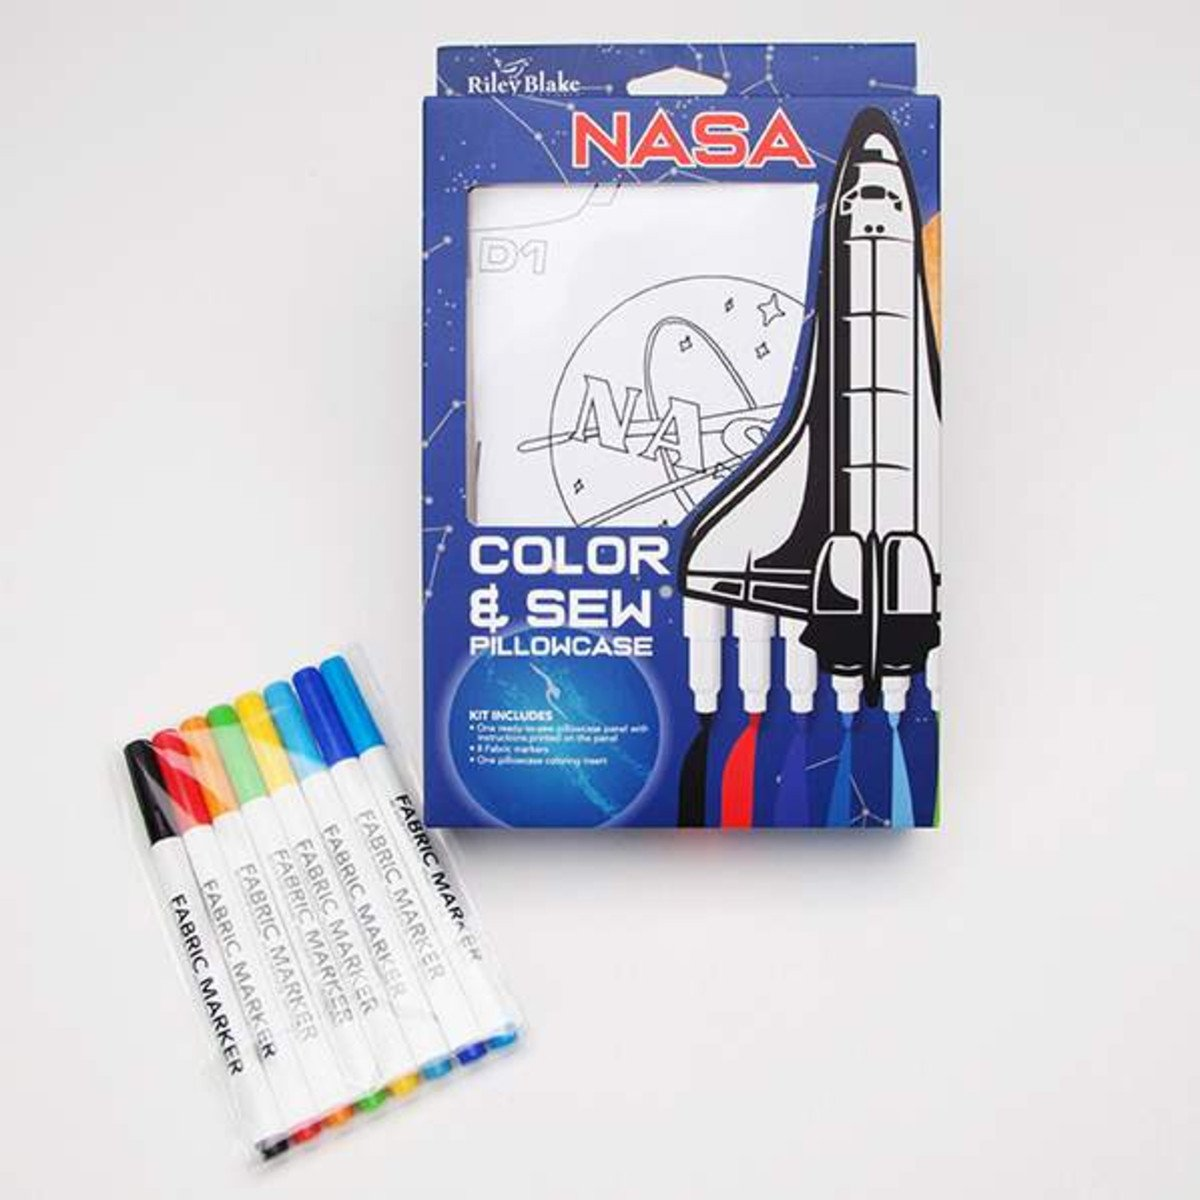 Pillowcase Kit - NASA Color & Sew Pillowcase